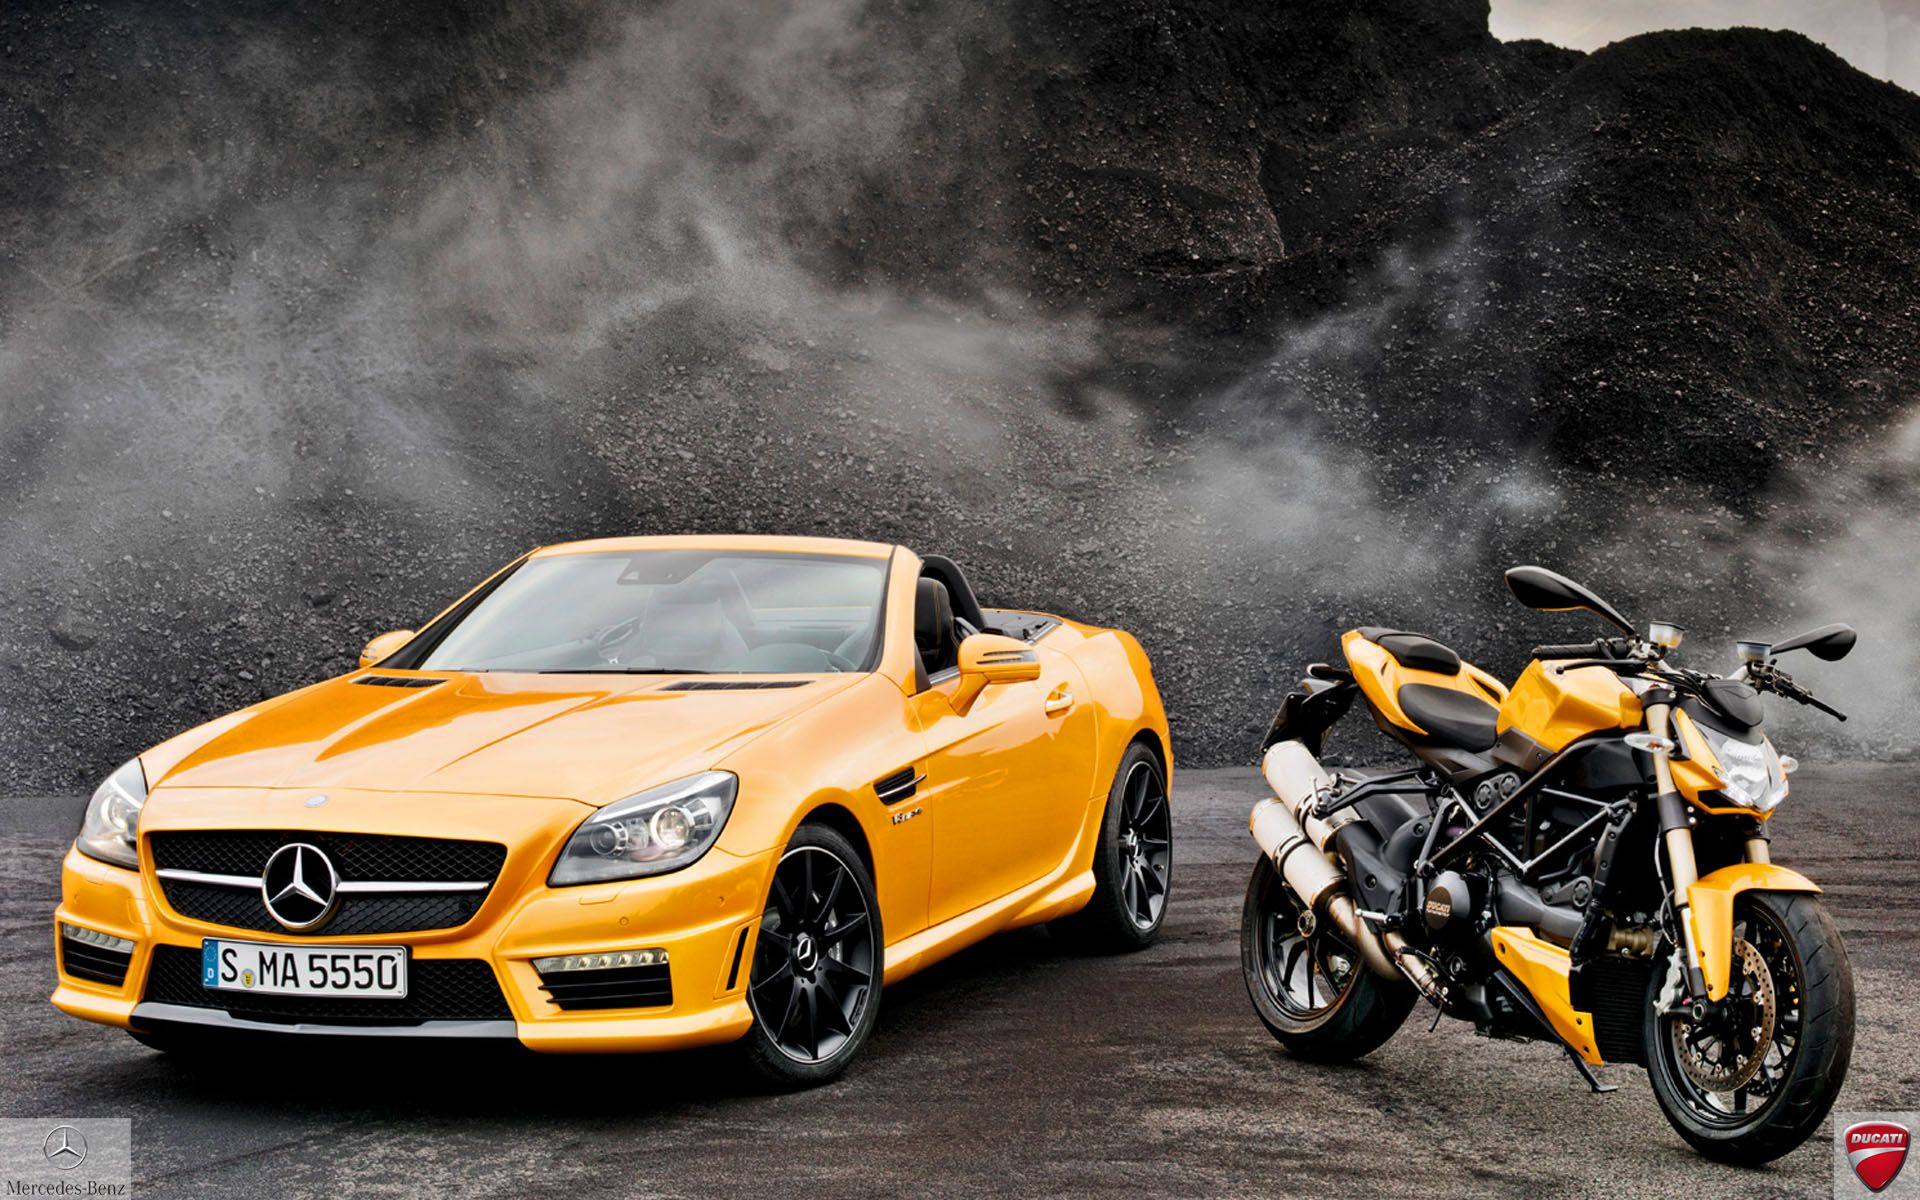 Mercedes Benz Slk55 Amg And Ducati Streetfighter 848 Wallpaper